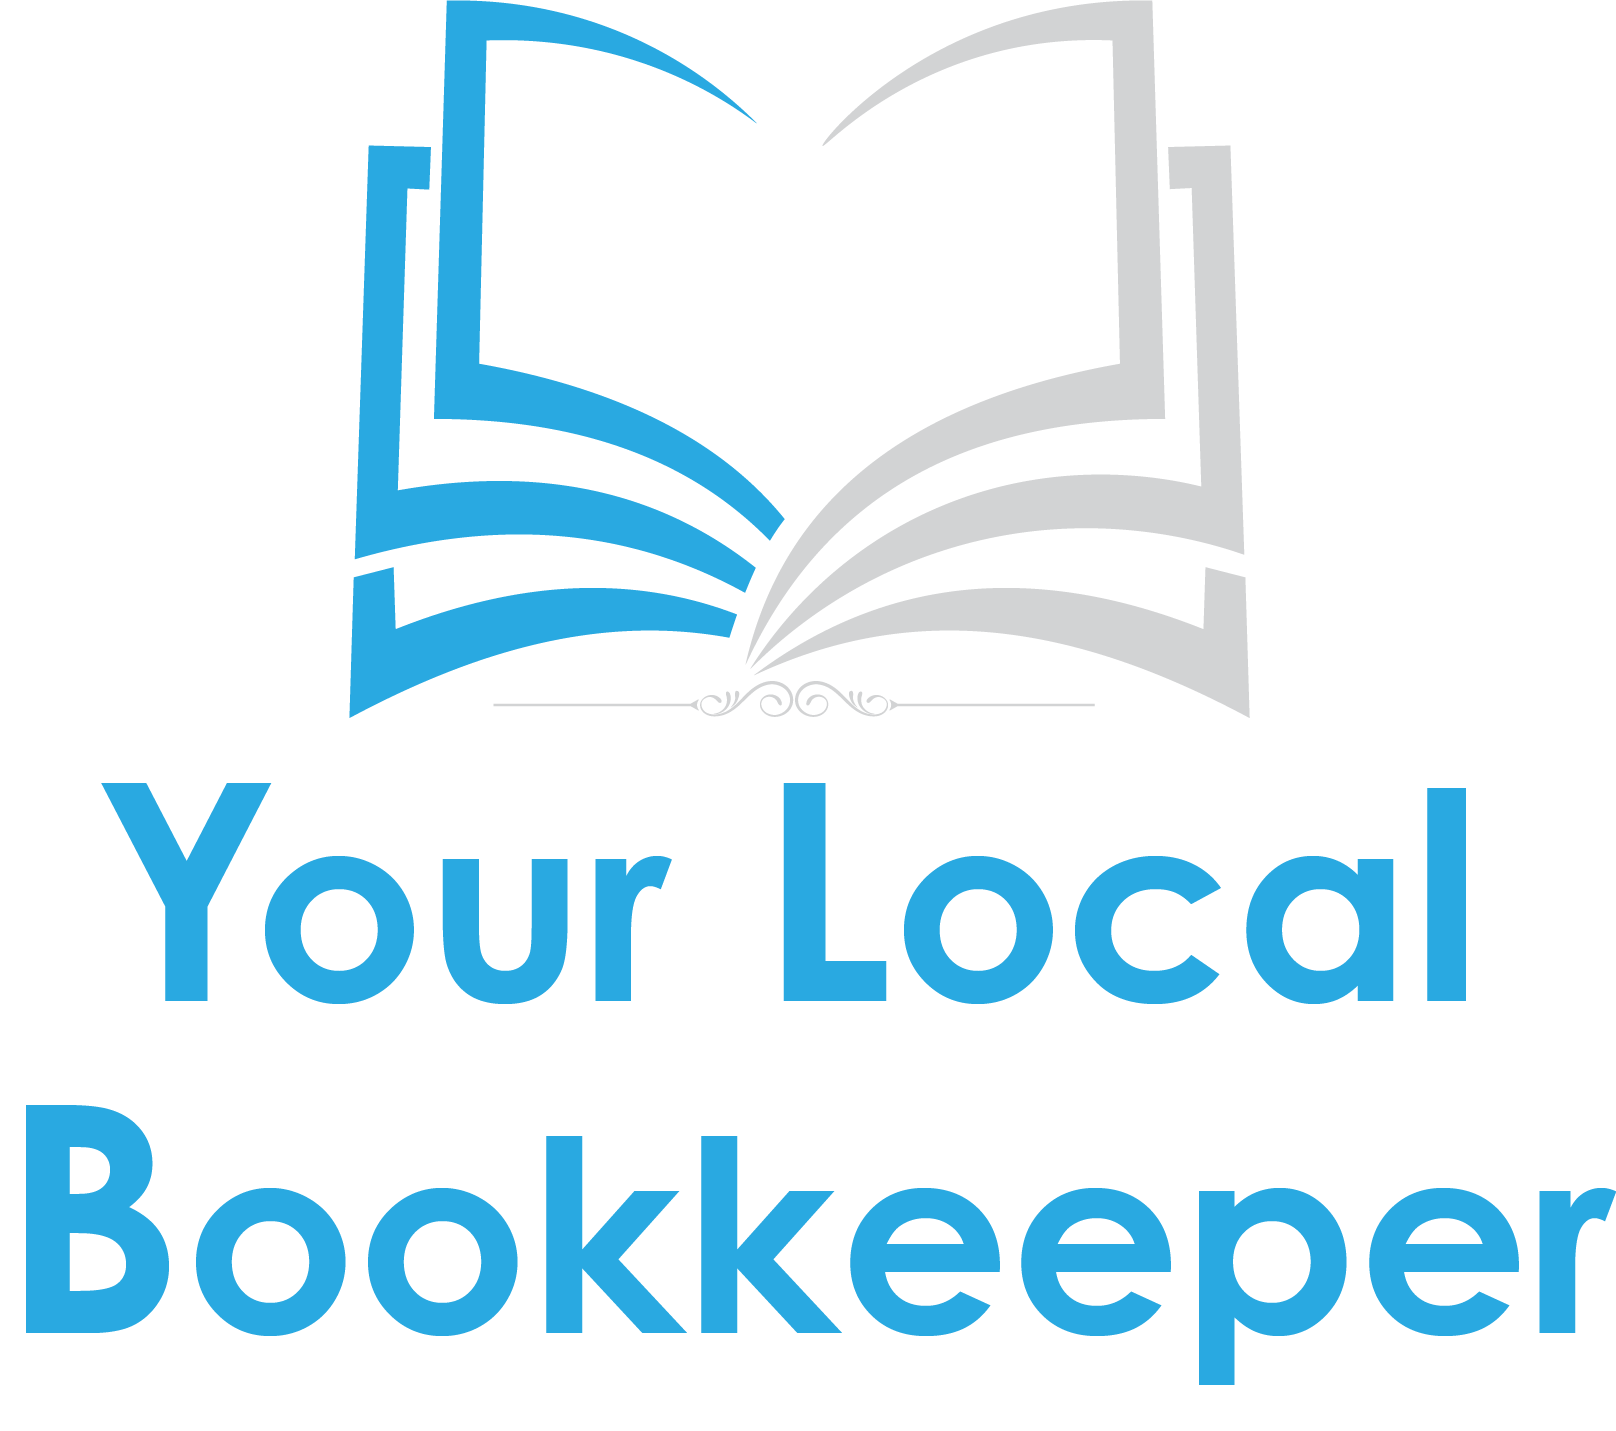 Your Local Bookkeeper v8 Square Logo.png